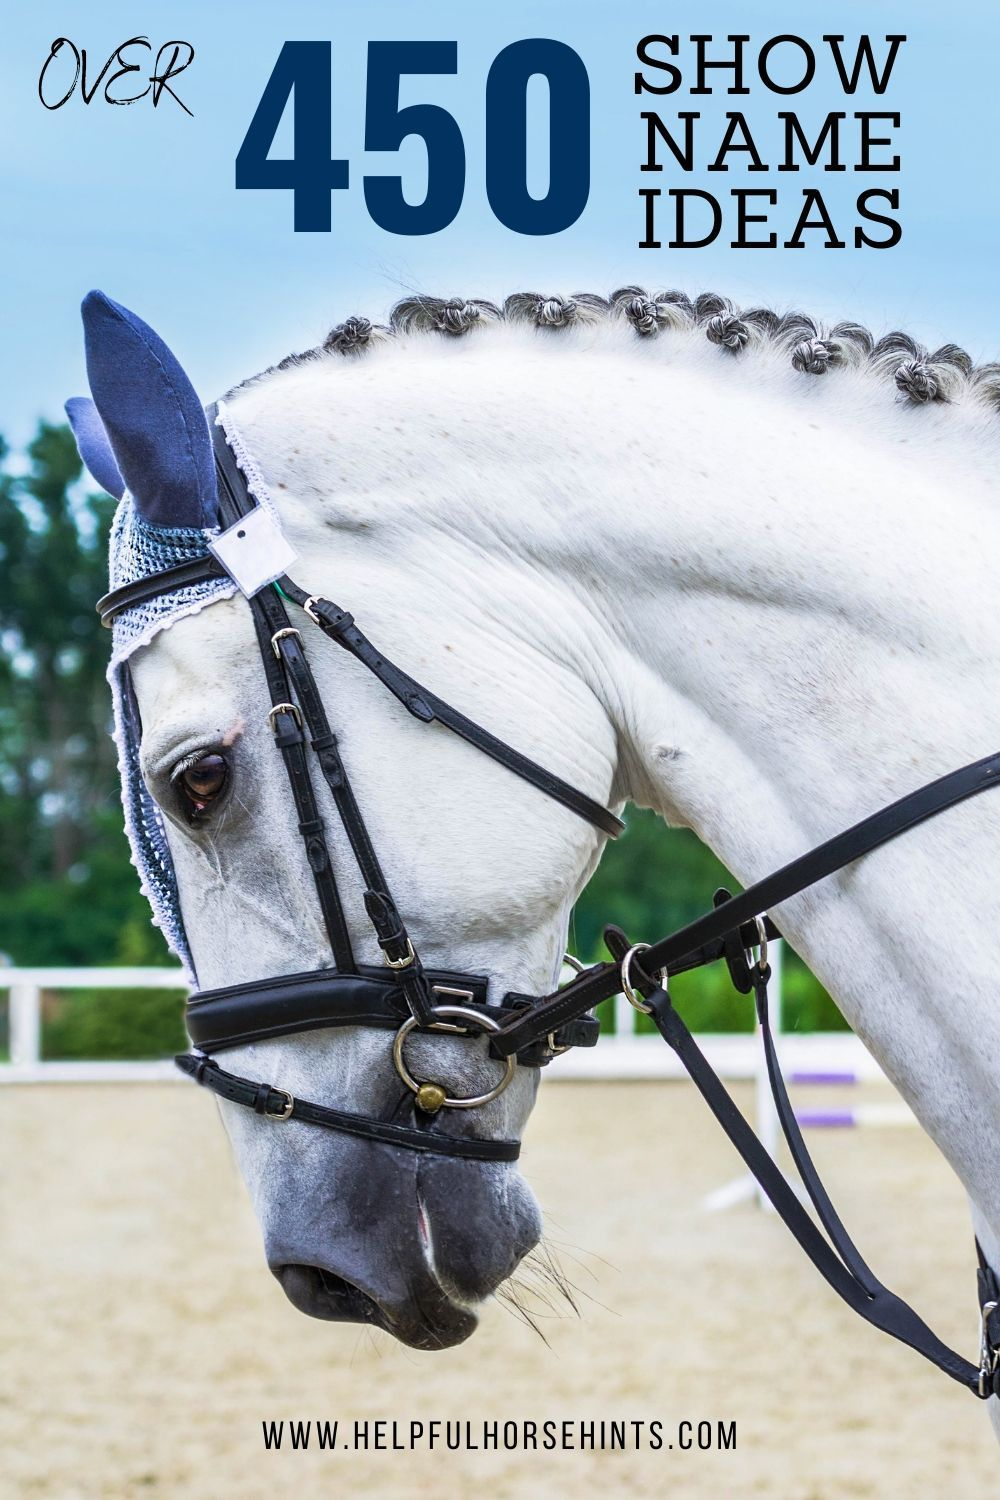 481 Show Name Ideas For Your Horse Horse Show Names Horses Show Horses